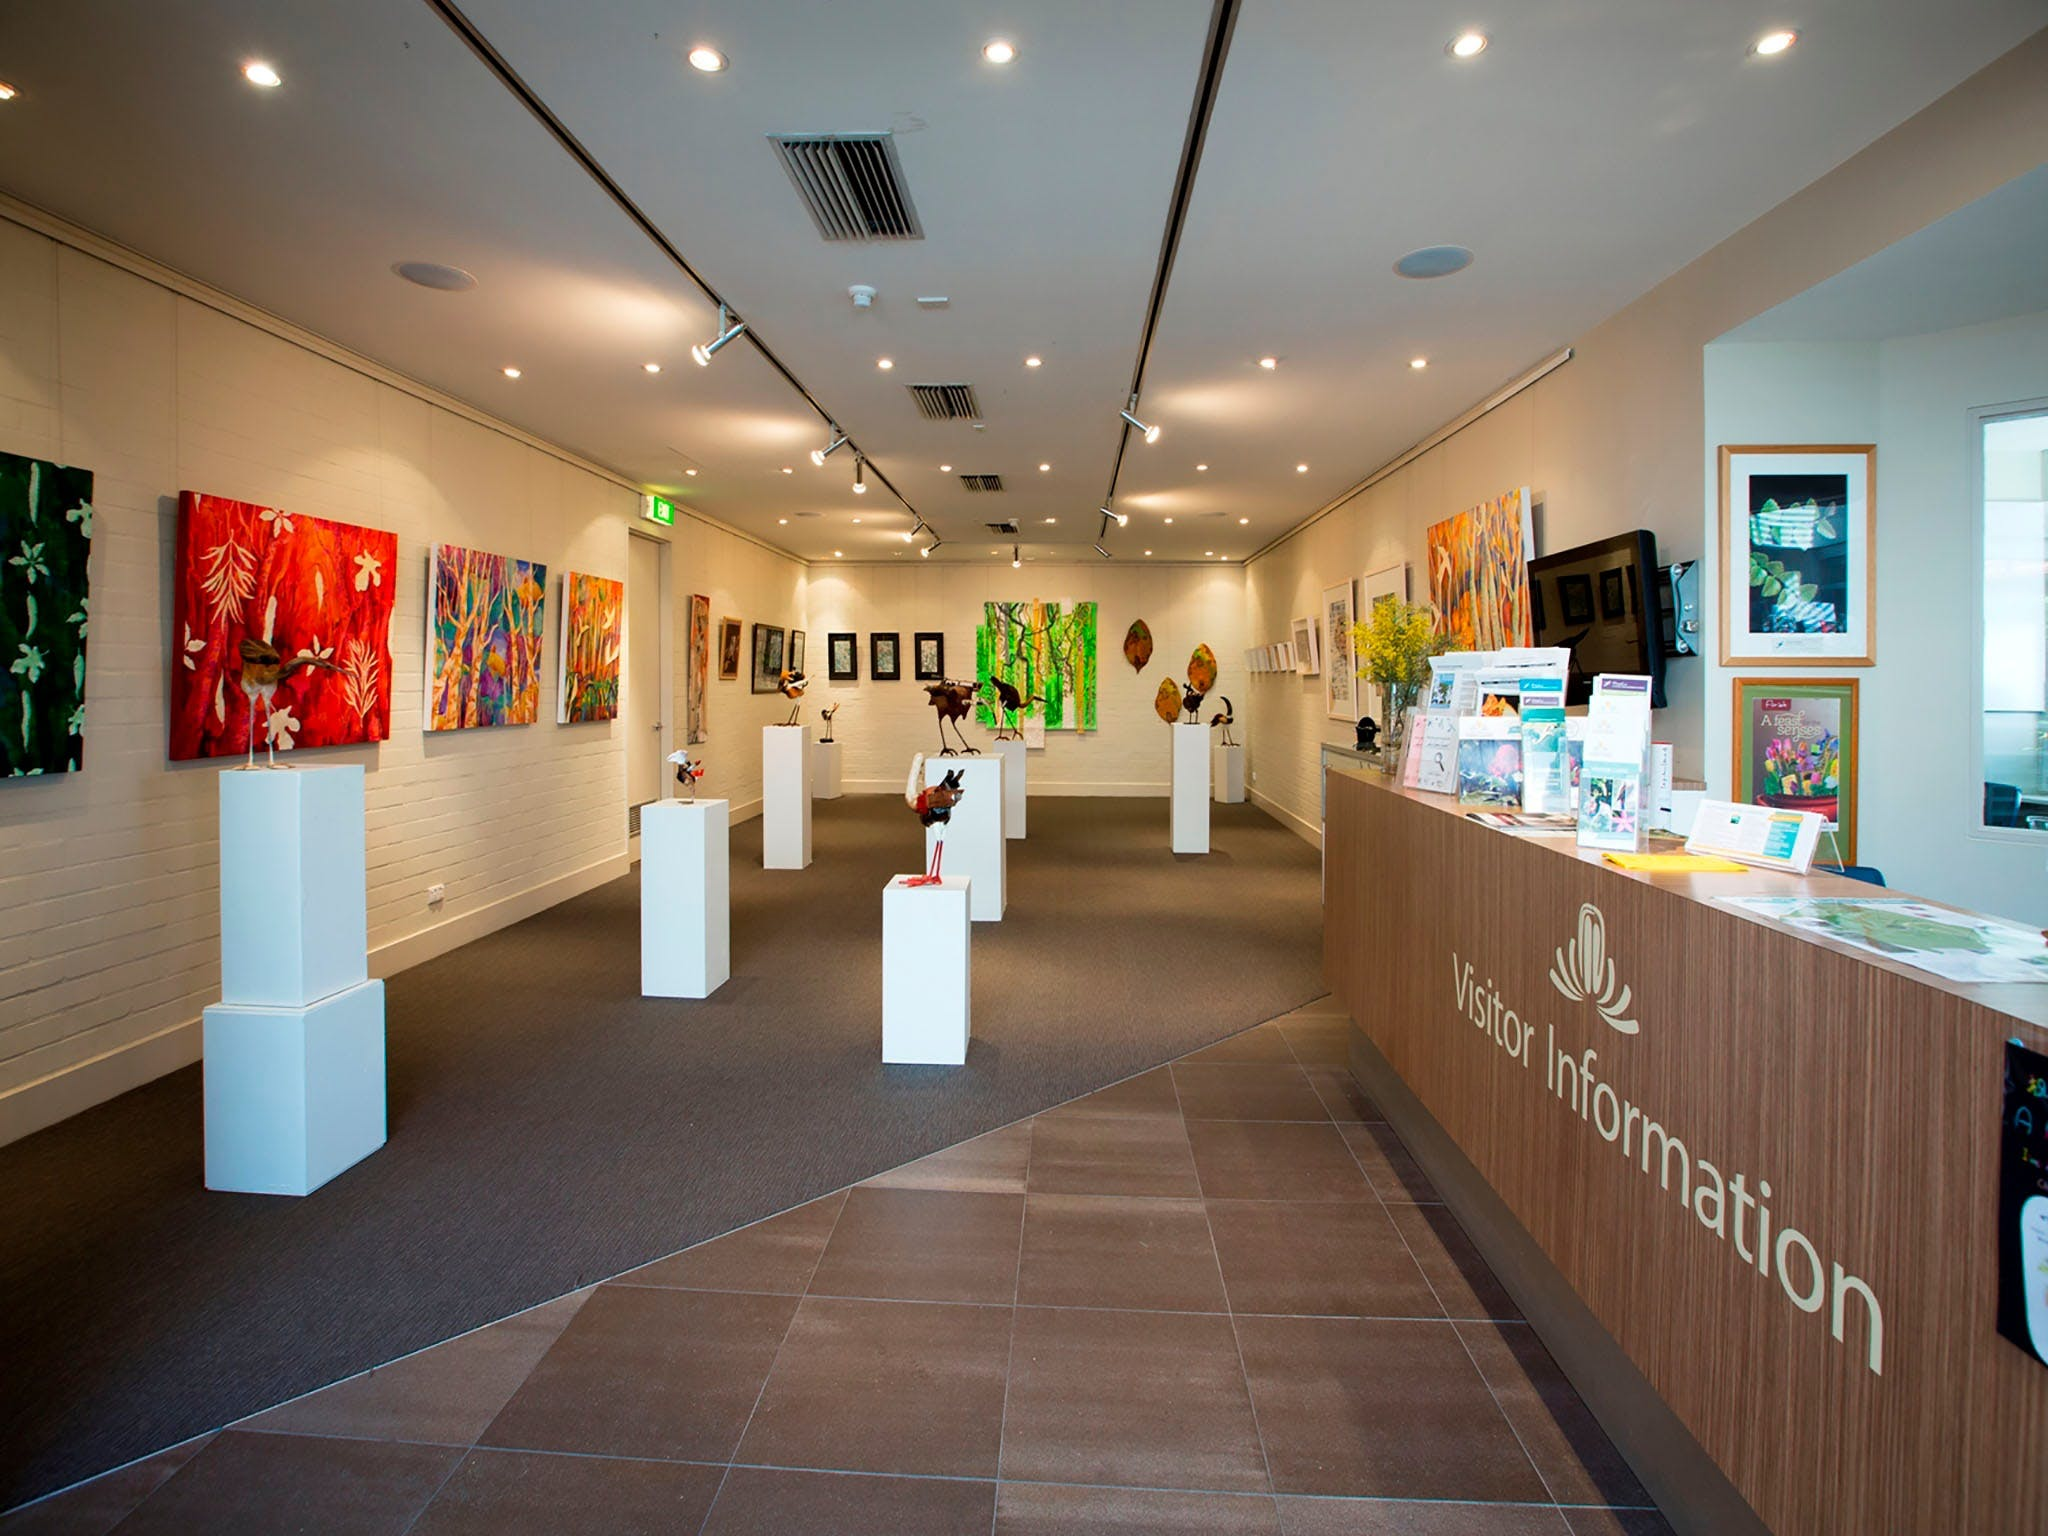 Australian National Botanic Gardens Visitor Centre Gallery - Accommodation Sydney